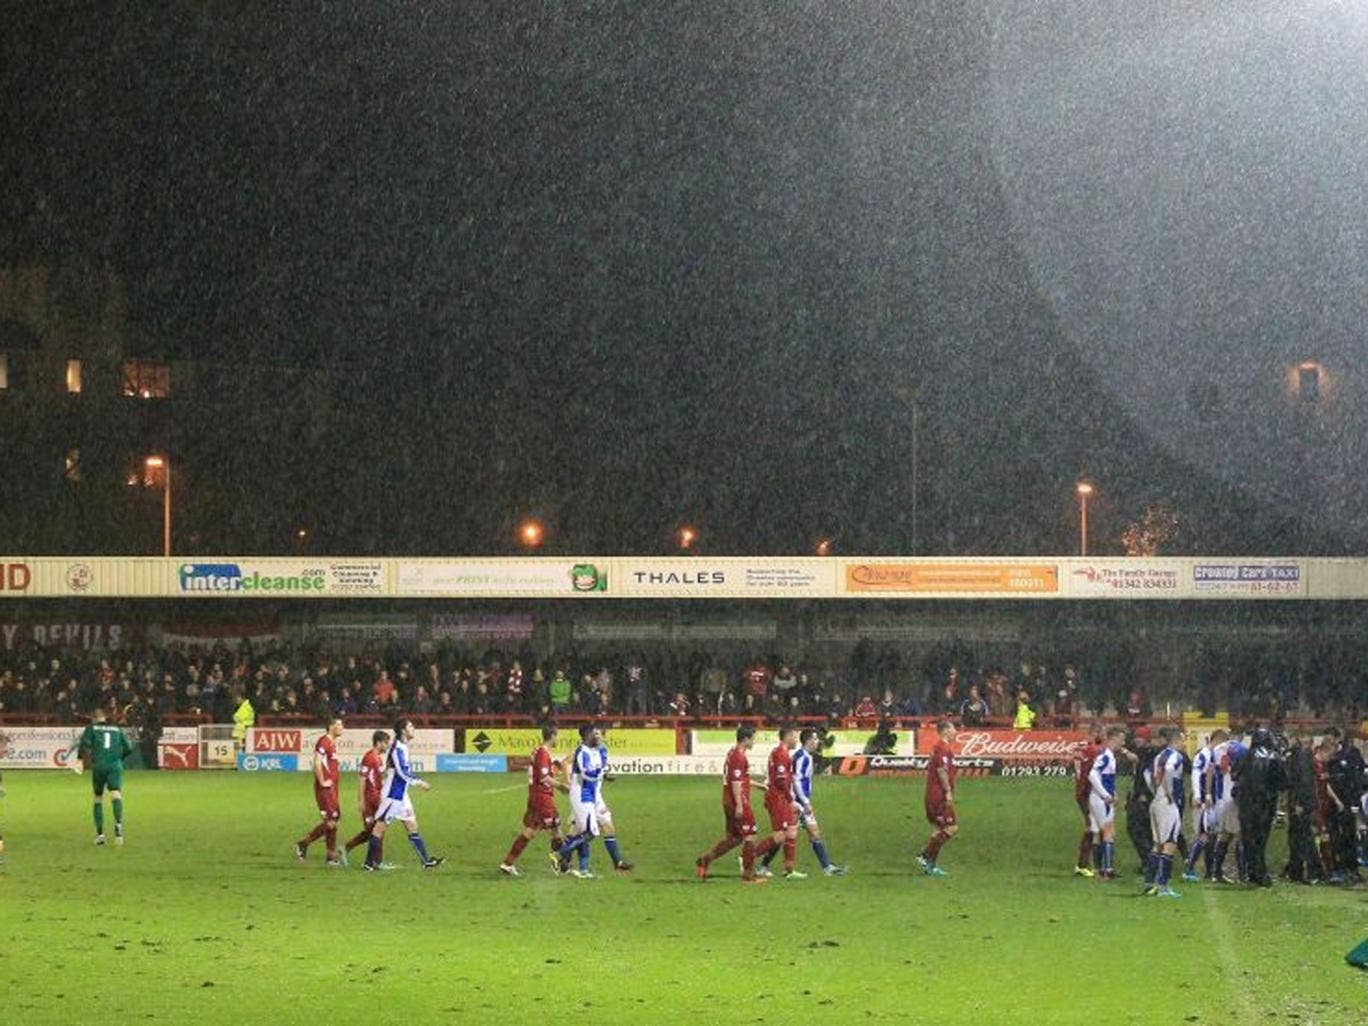 Crawley Town and Bristol Rovers players leave the pitch as the match is abandoned due to bad weather